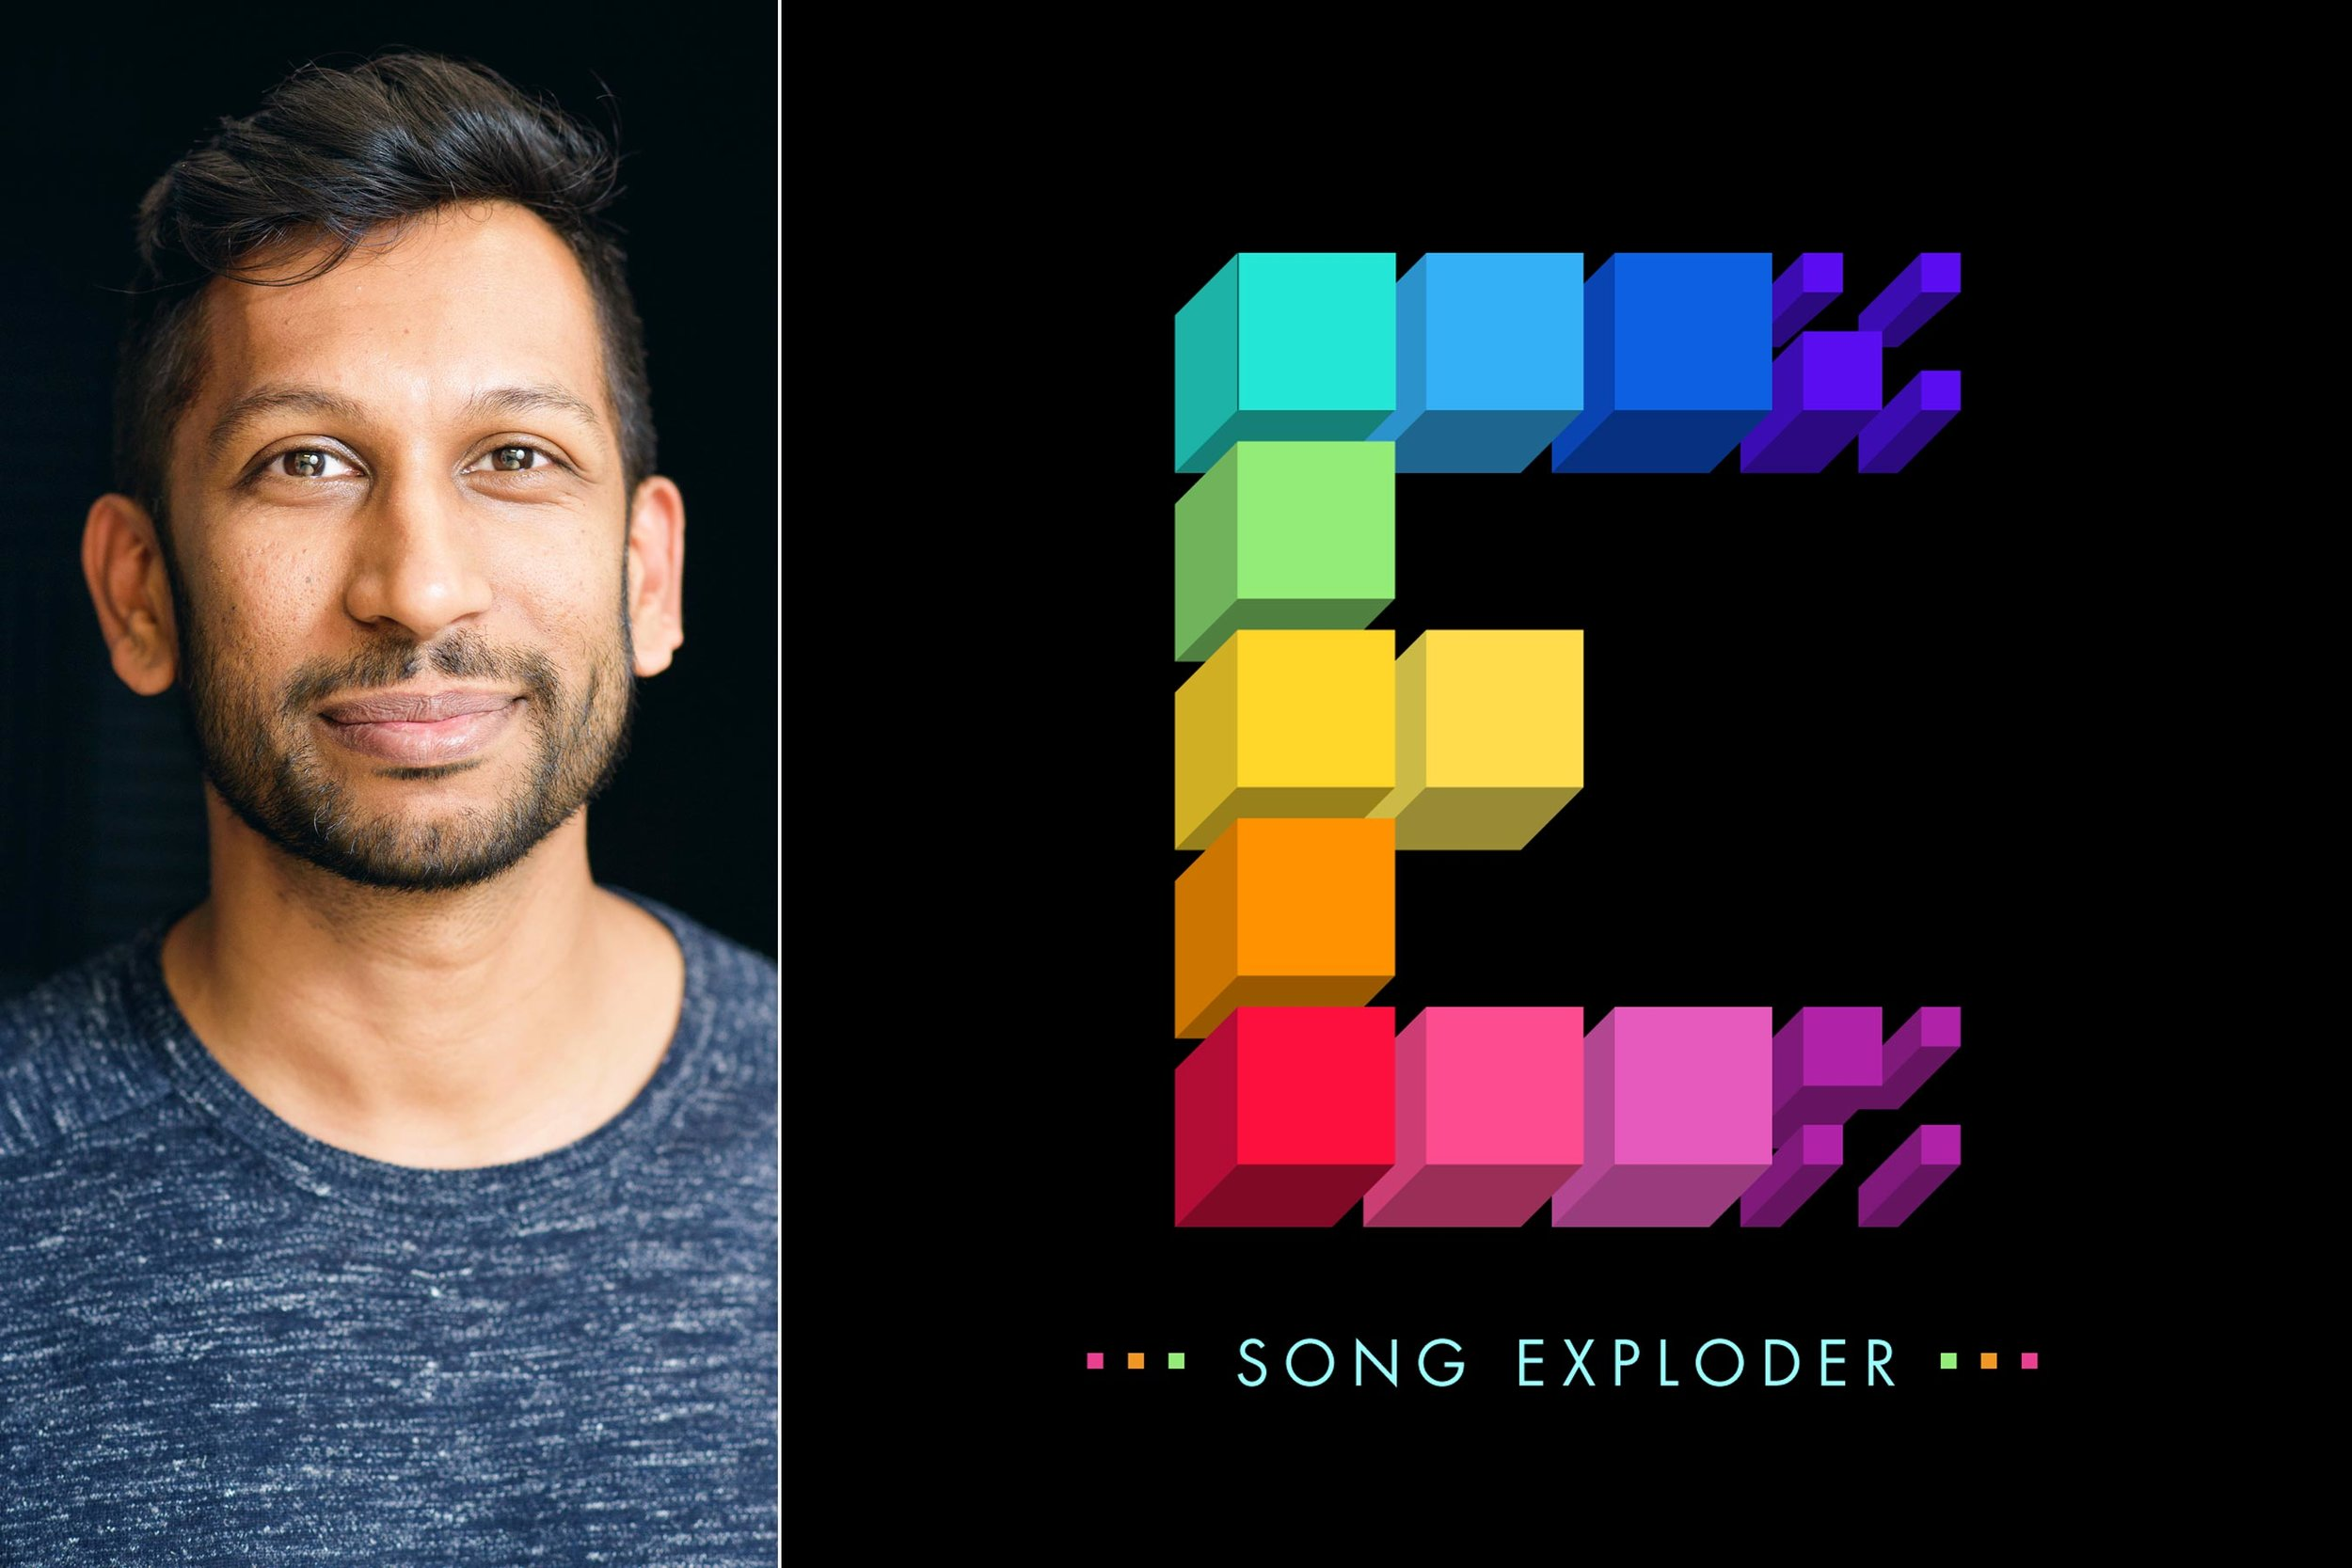 Song Exploder | Developed and hosted by Hrishikesh Hirway